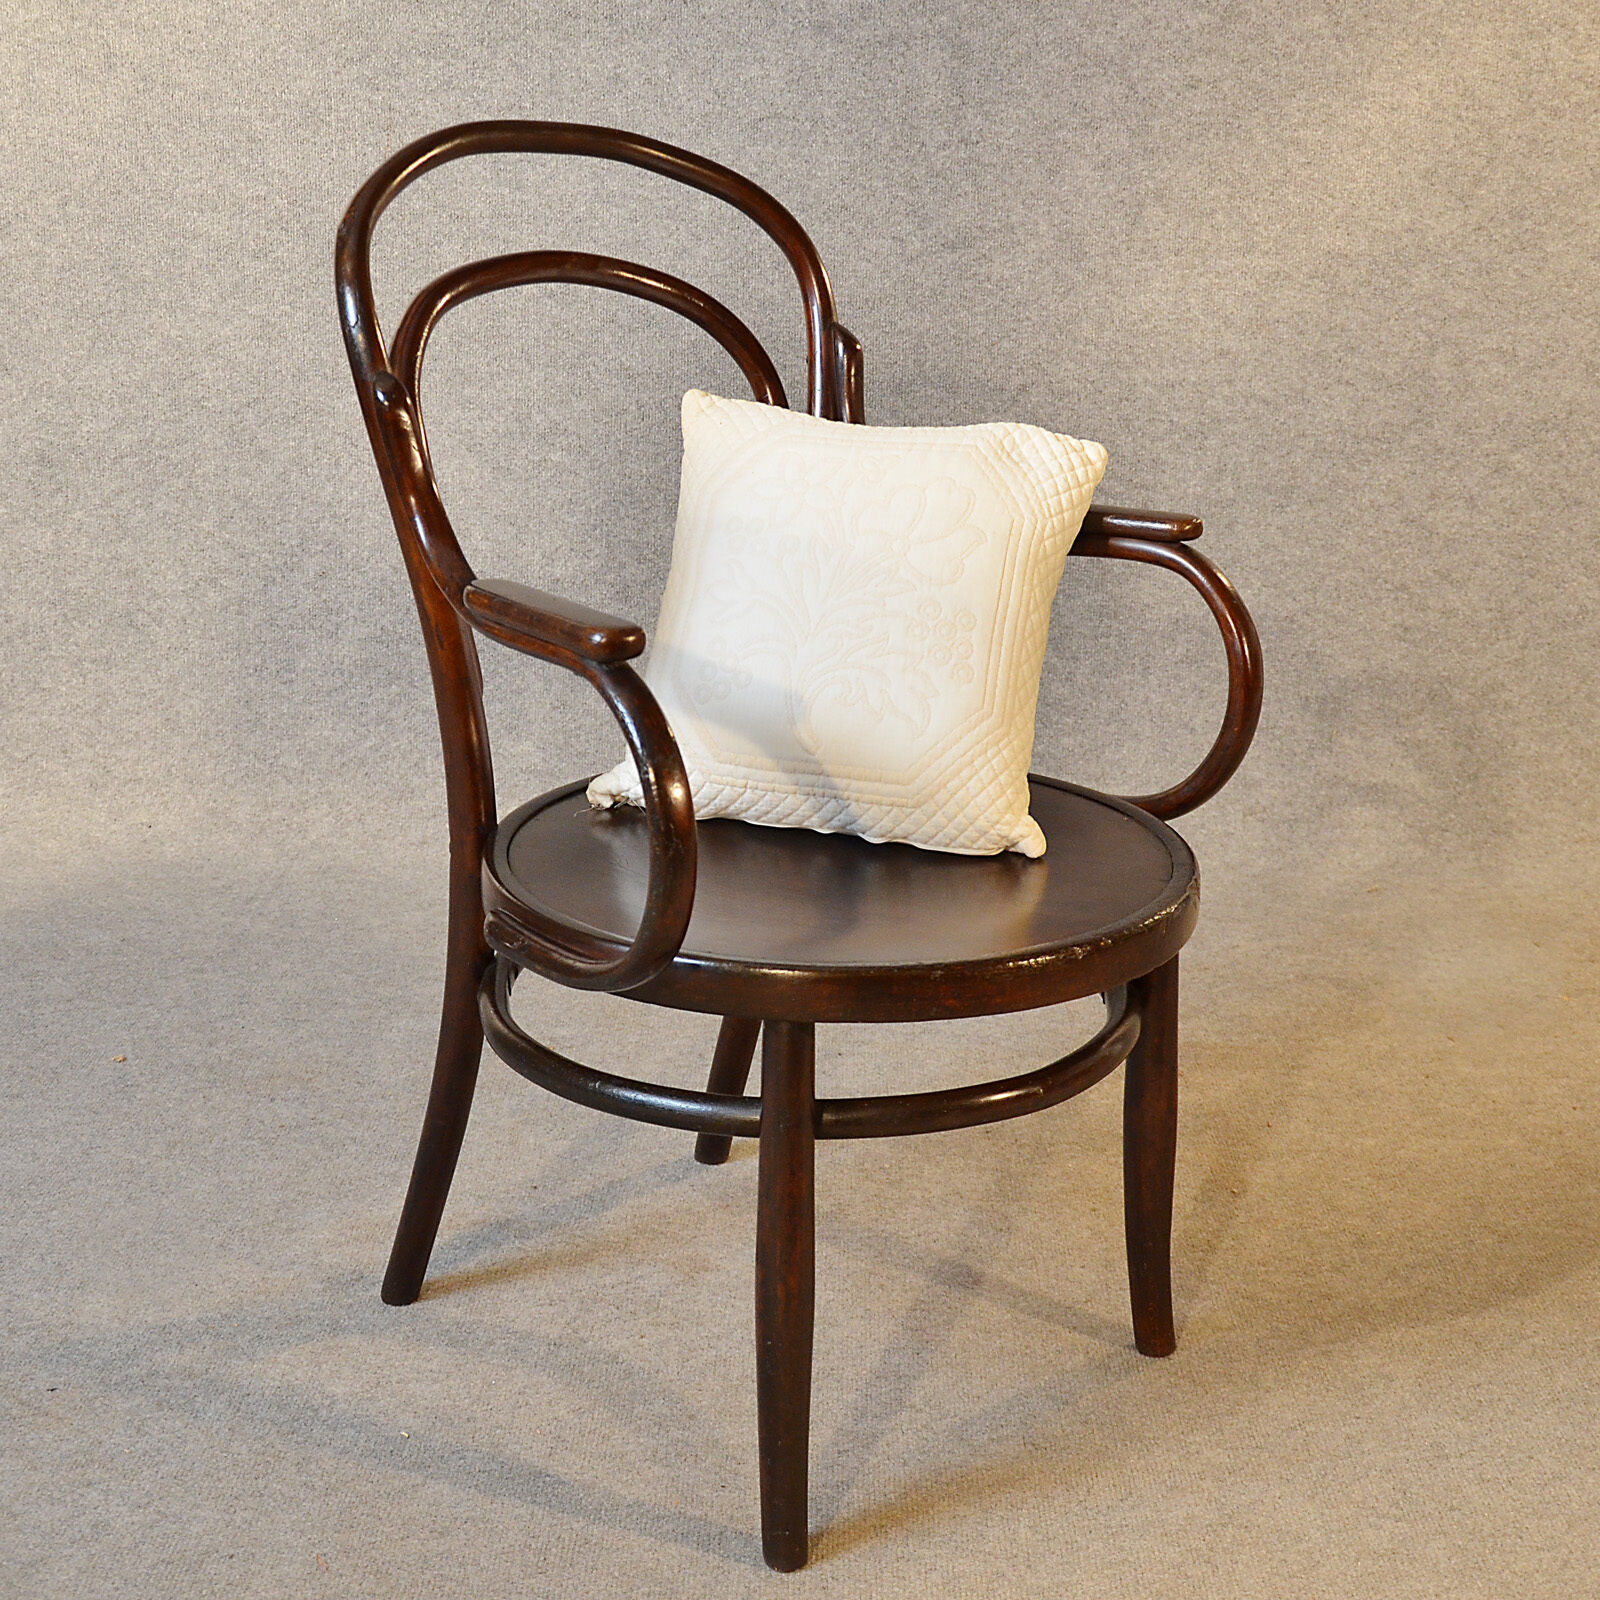 antique chairs ebay bar stool chair uk art deco bentwood armchair elbow vintage